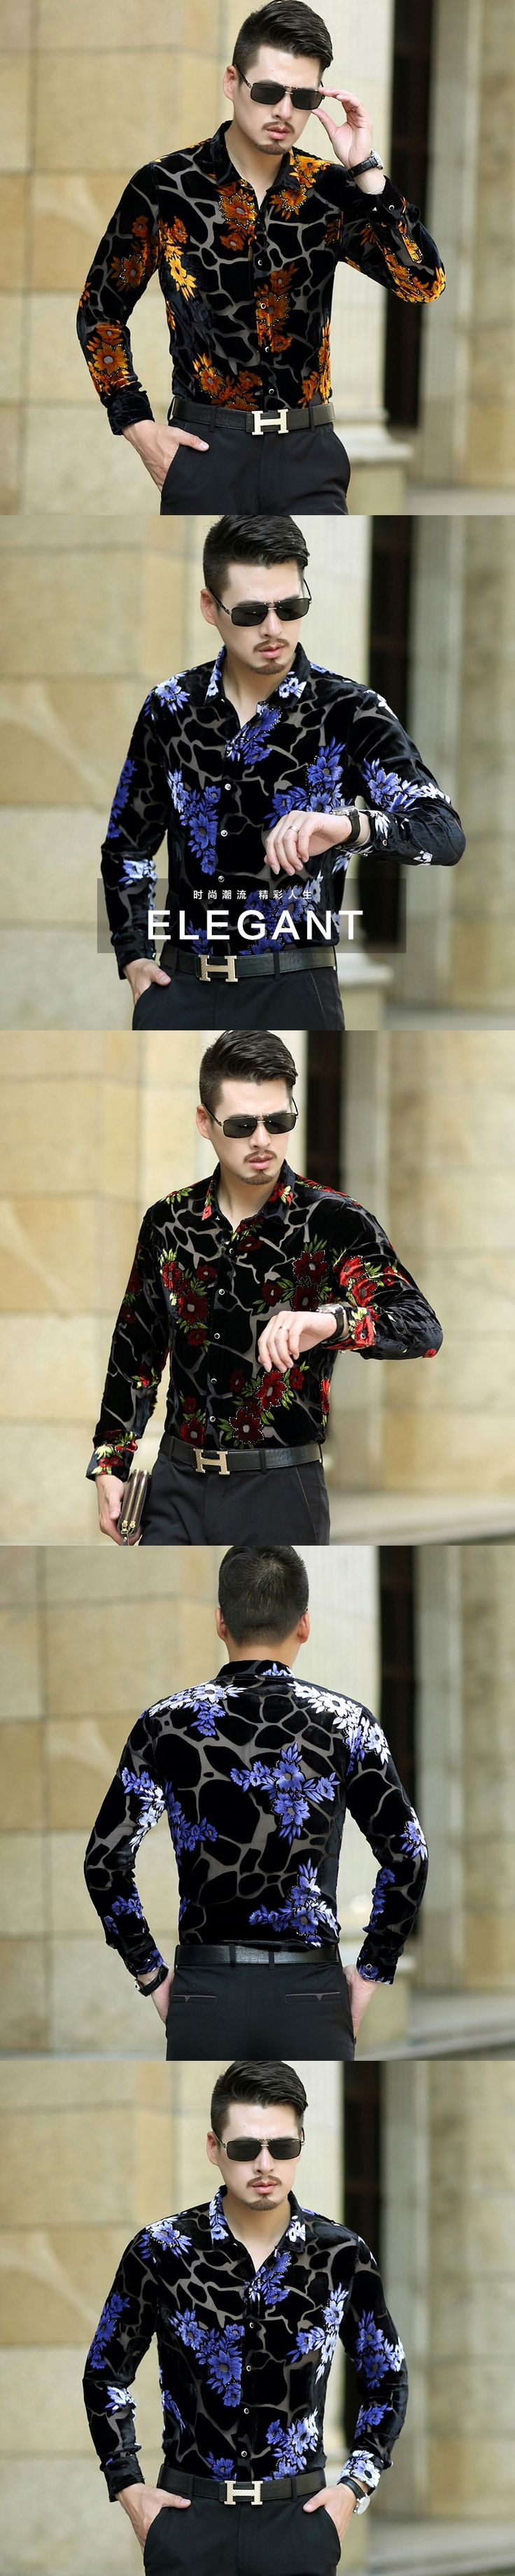 New arrival 2017 male hollow floral dress shirt sexy man see through clothes transparent long sleeve shirts